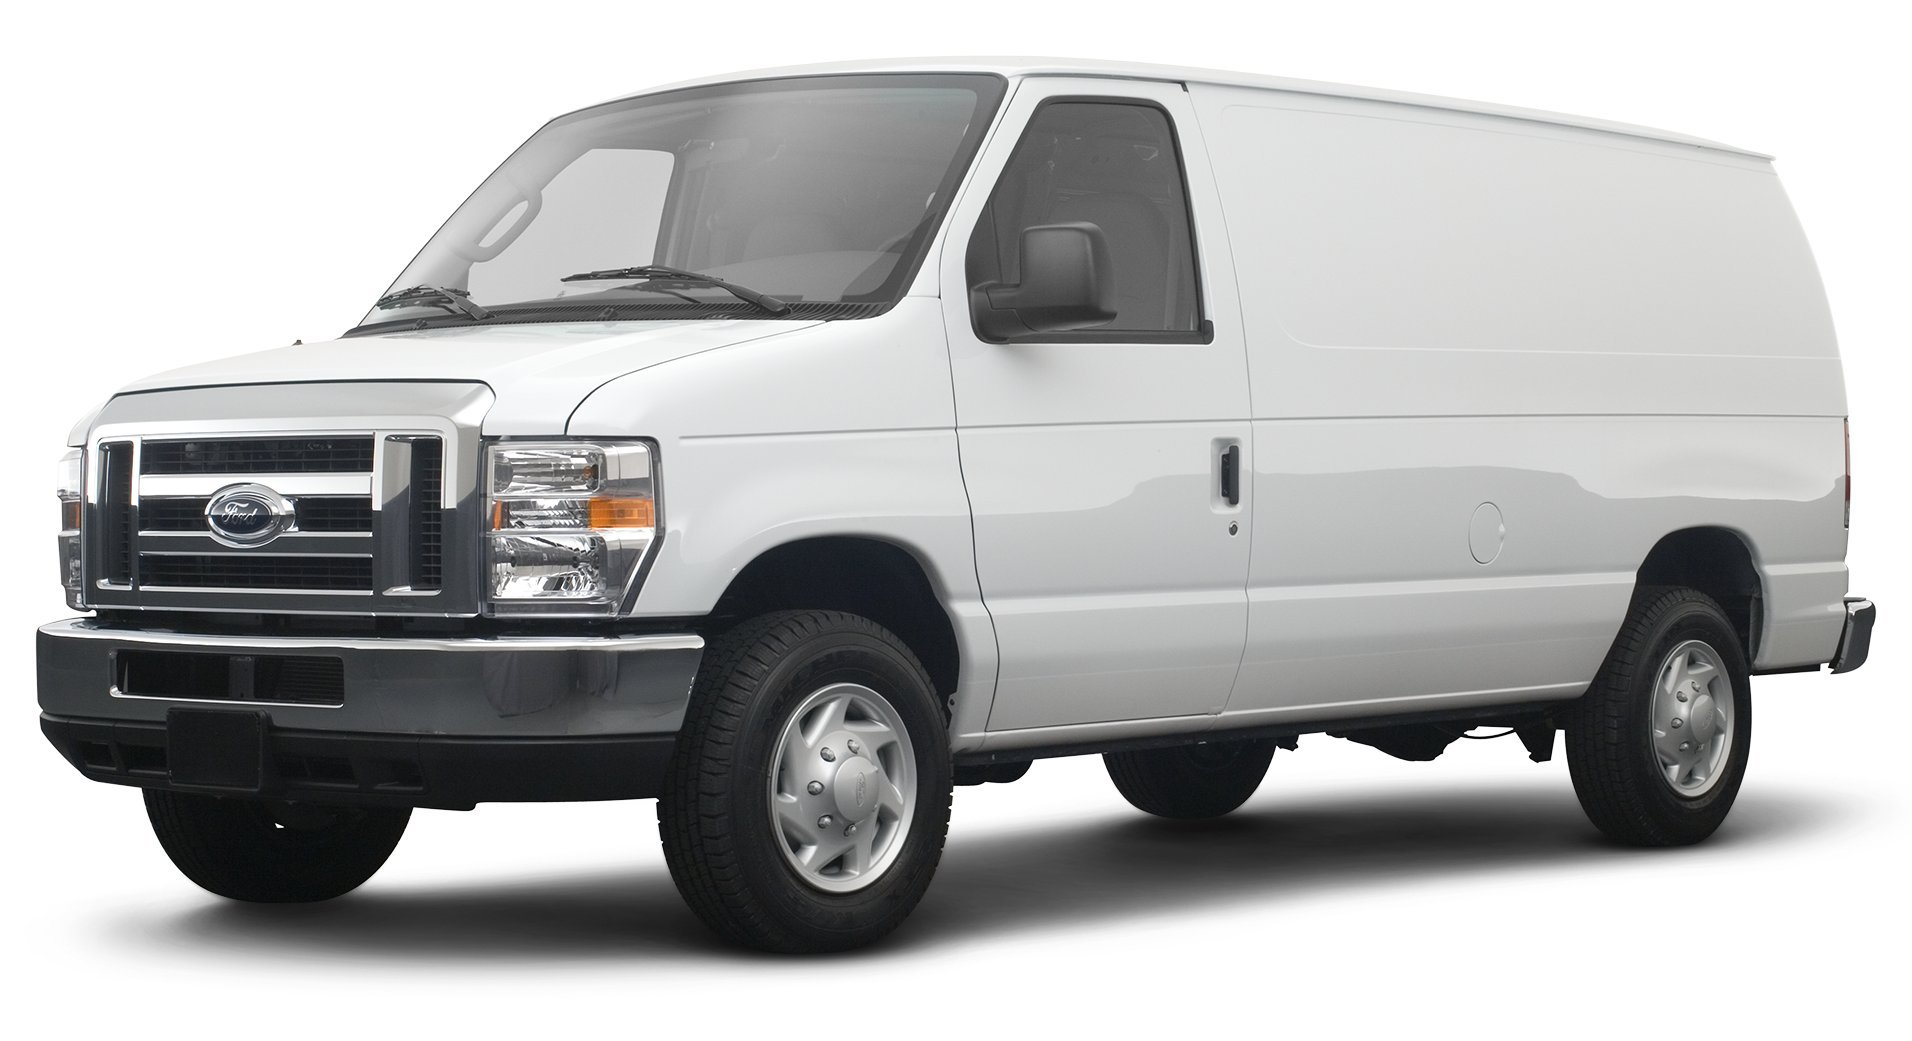 ... 2008 Ford E-150 Commercial, E-150 Extended Cab ...